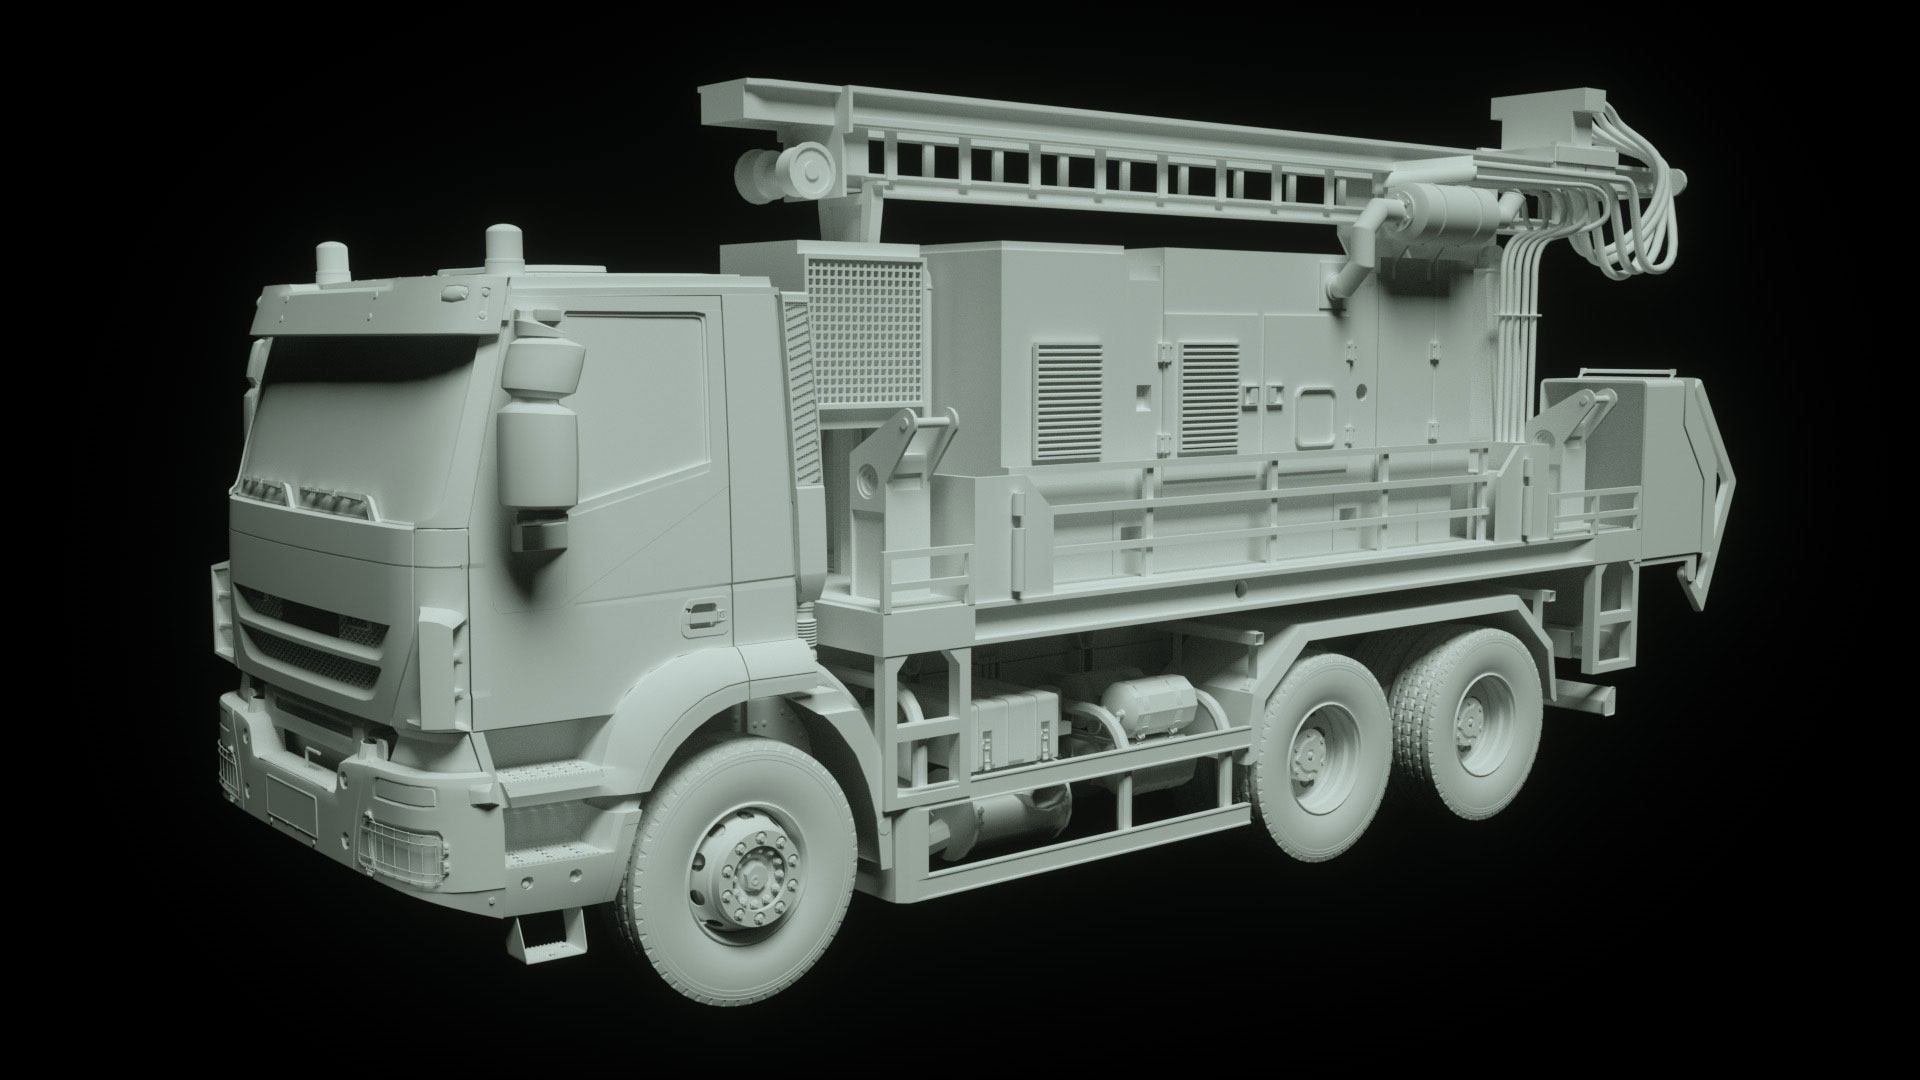 Projects_CharityWater_process_Drilling_Rig_model_01_Octane